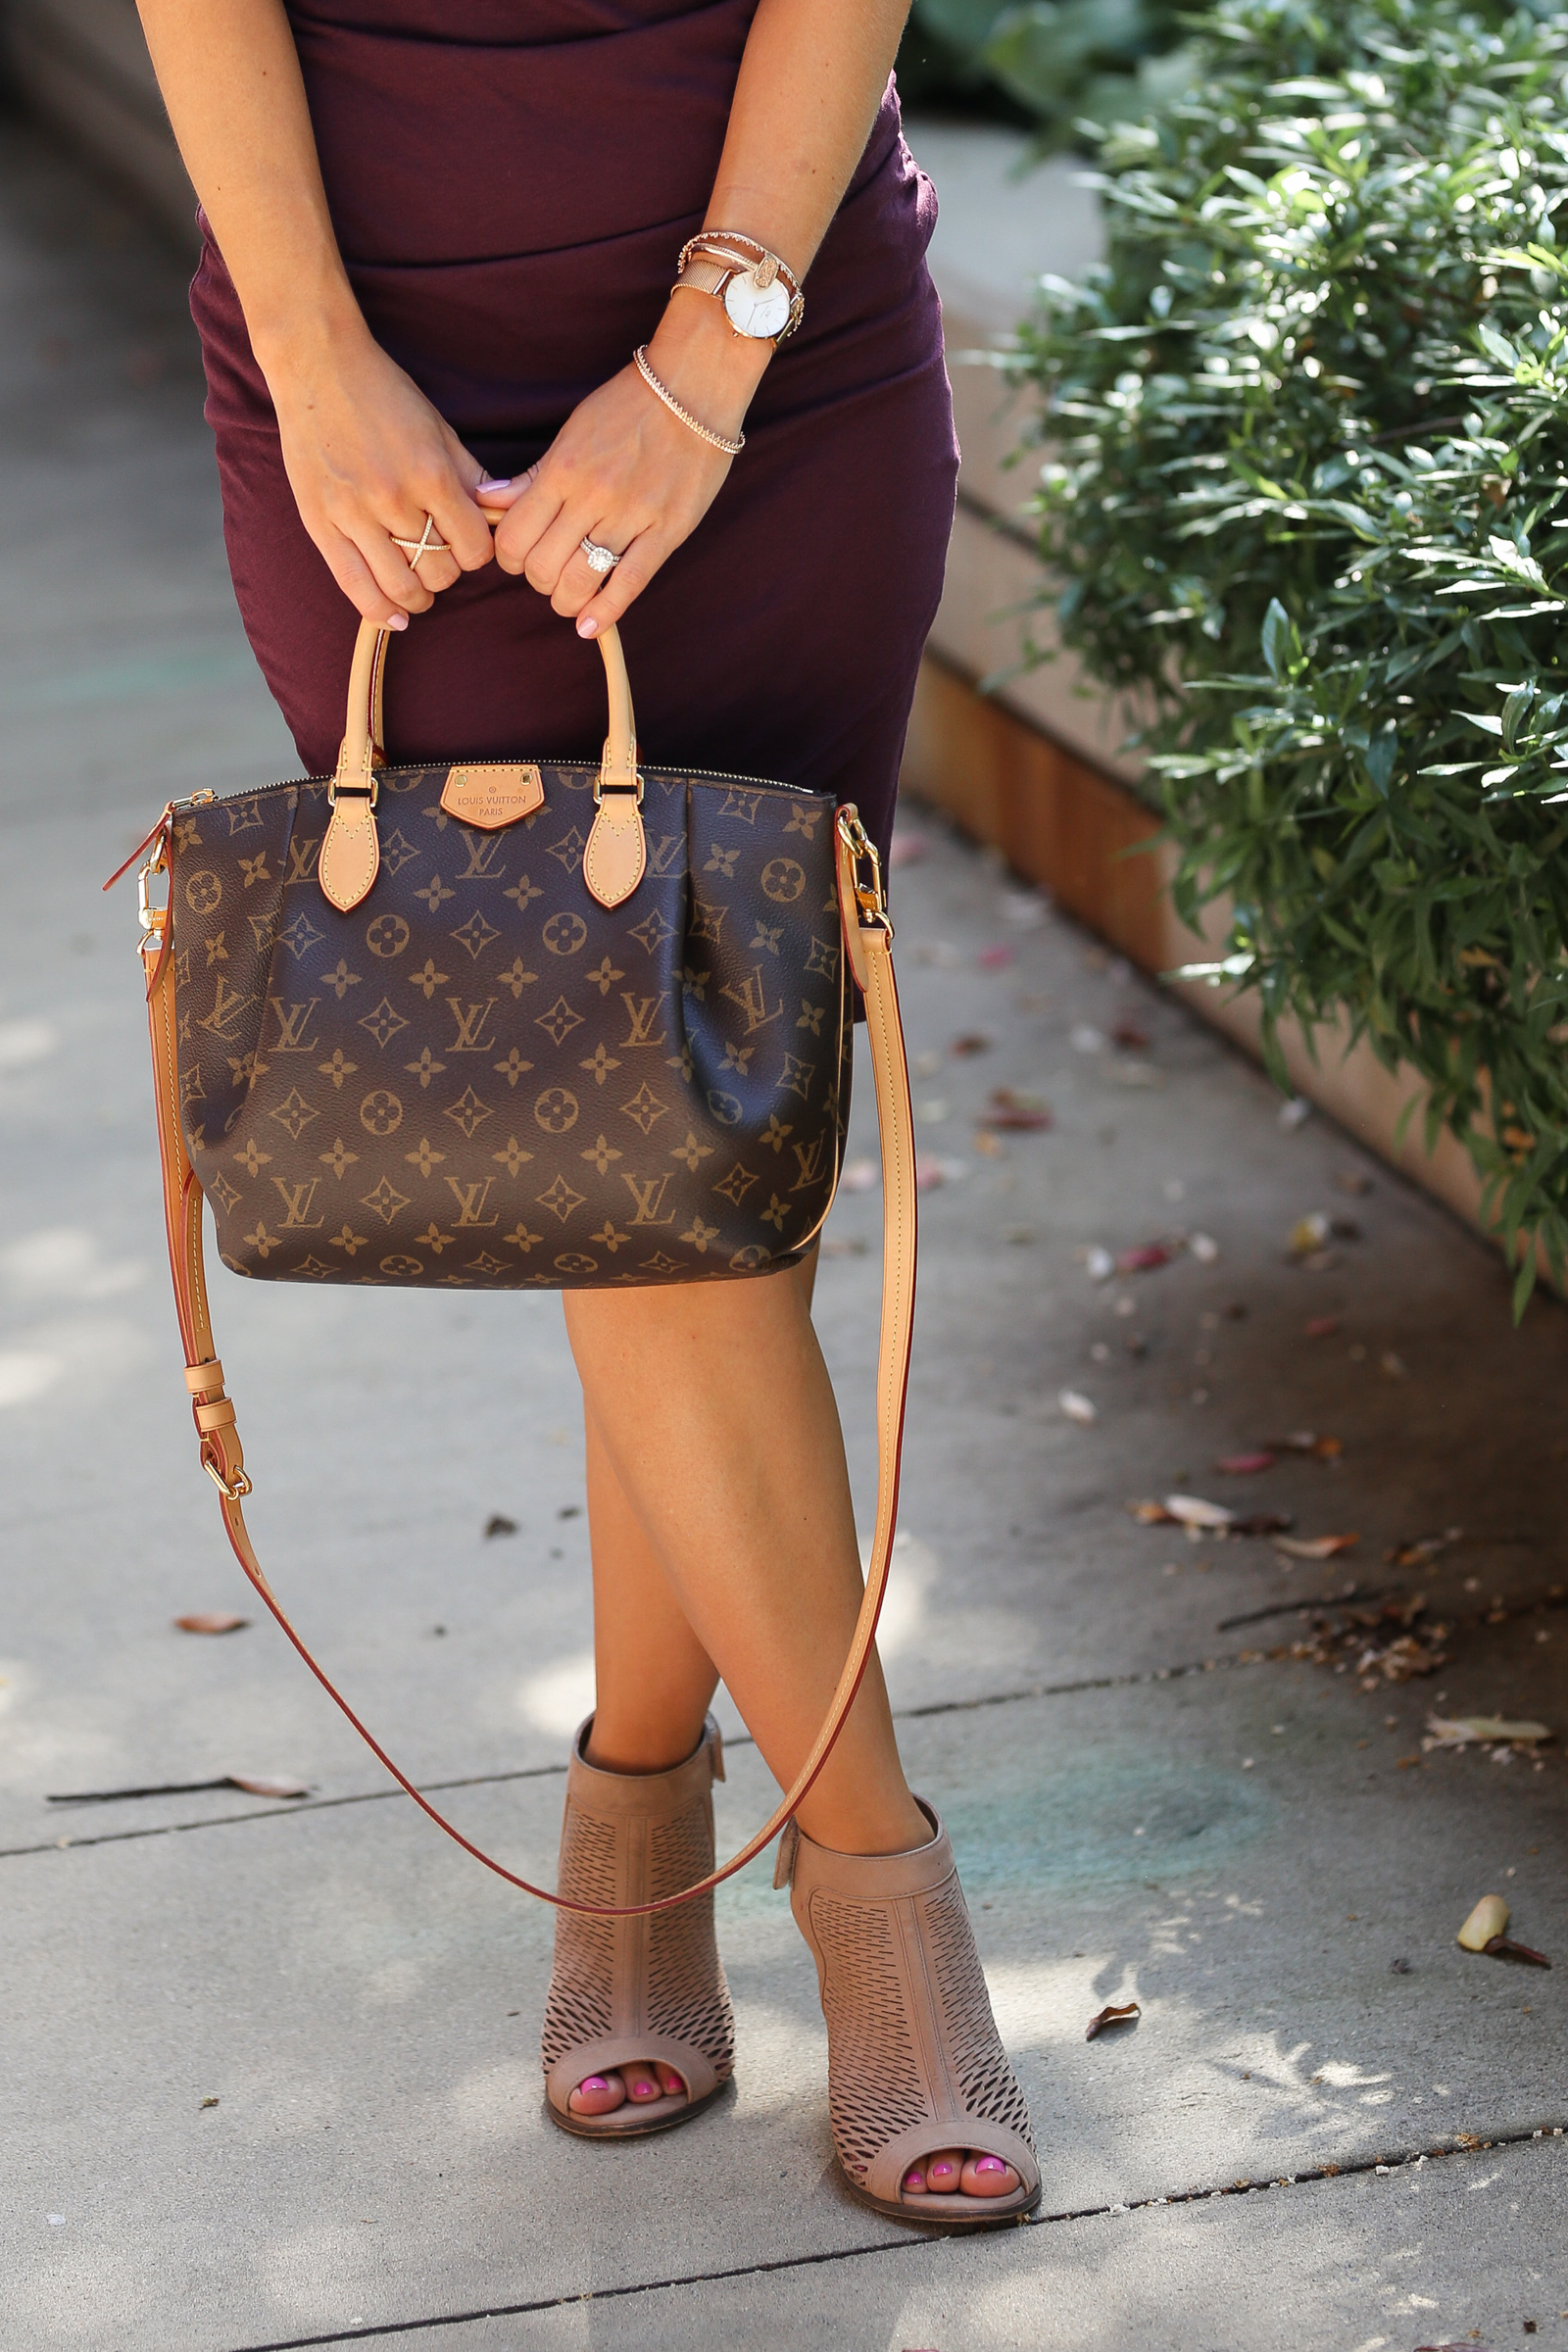 Louis Vuitton Turenne PM, Vince Camuto booties